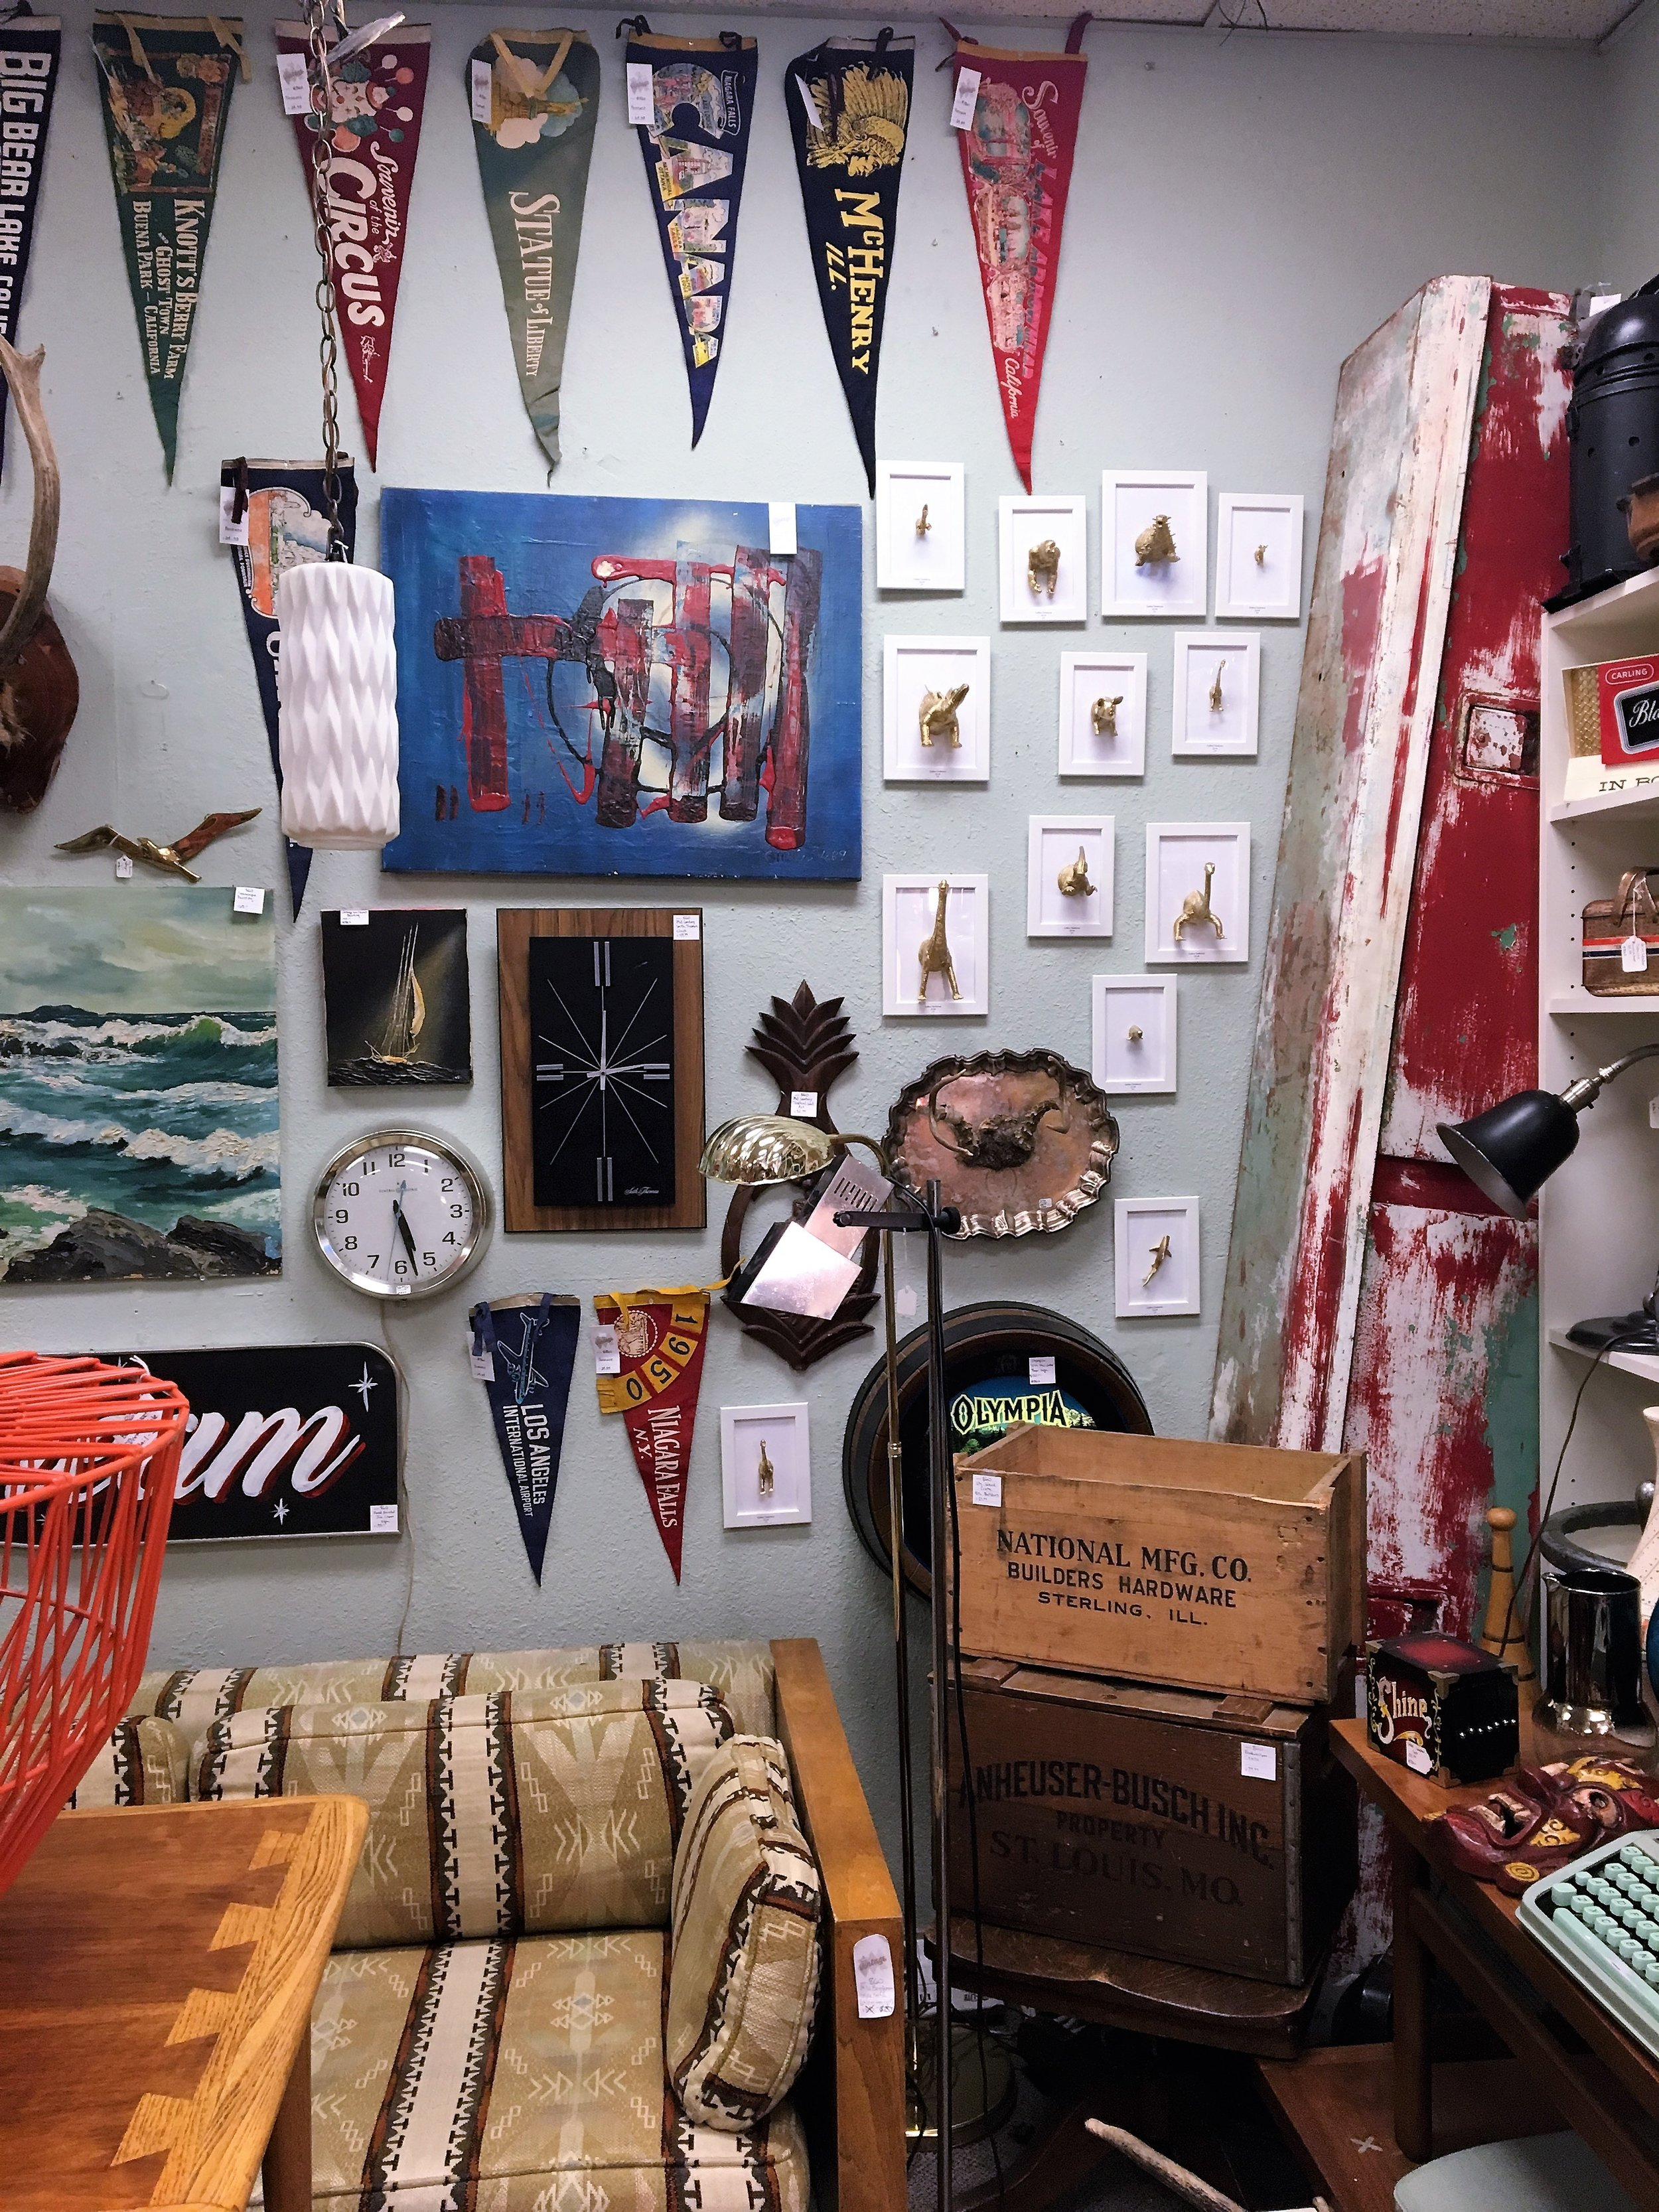 We took a stroll through the  Freemont Vintage Mall . Although we didn't walk away with anything, I love browsing and seeing what kind of knick knacks are out there. If you like vintage, this store is up your alley.